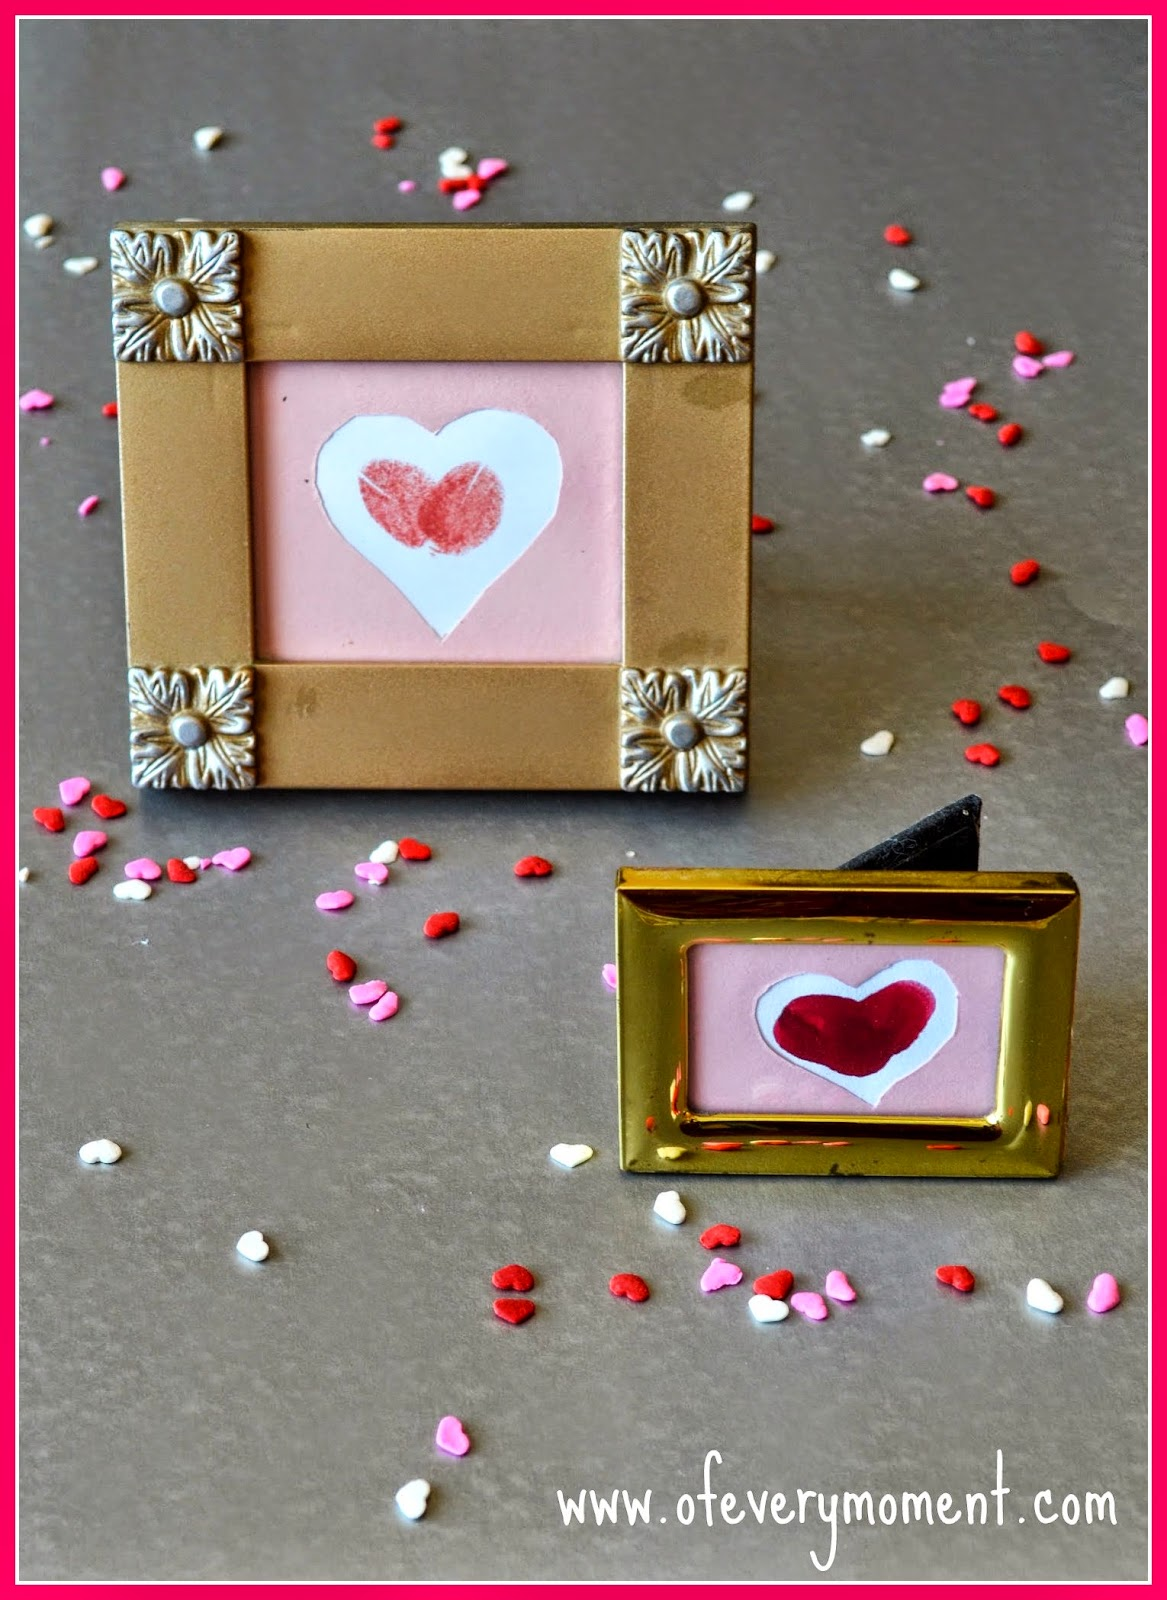 thumbprint art, framed hearts